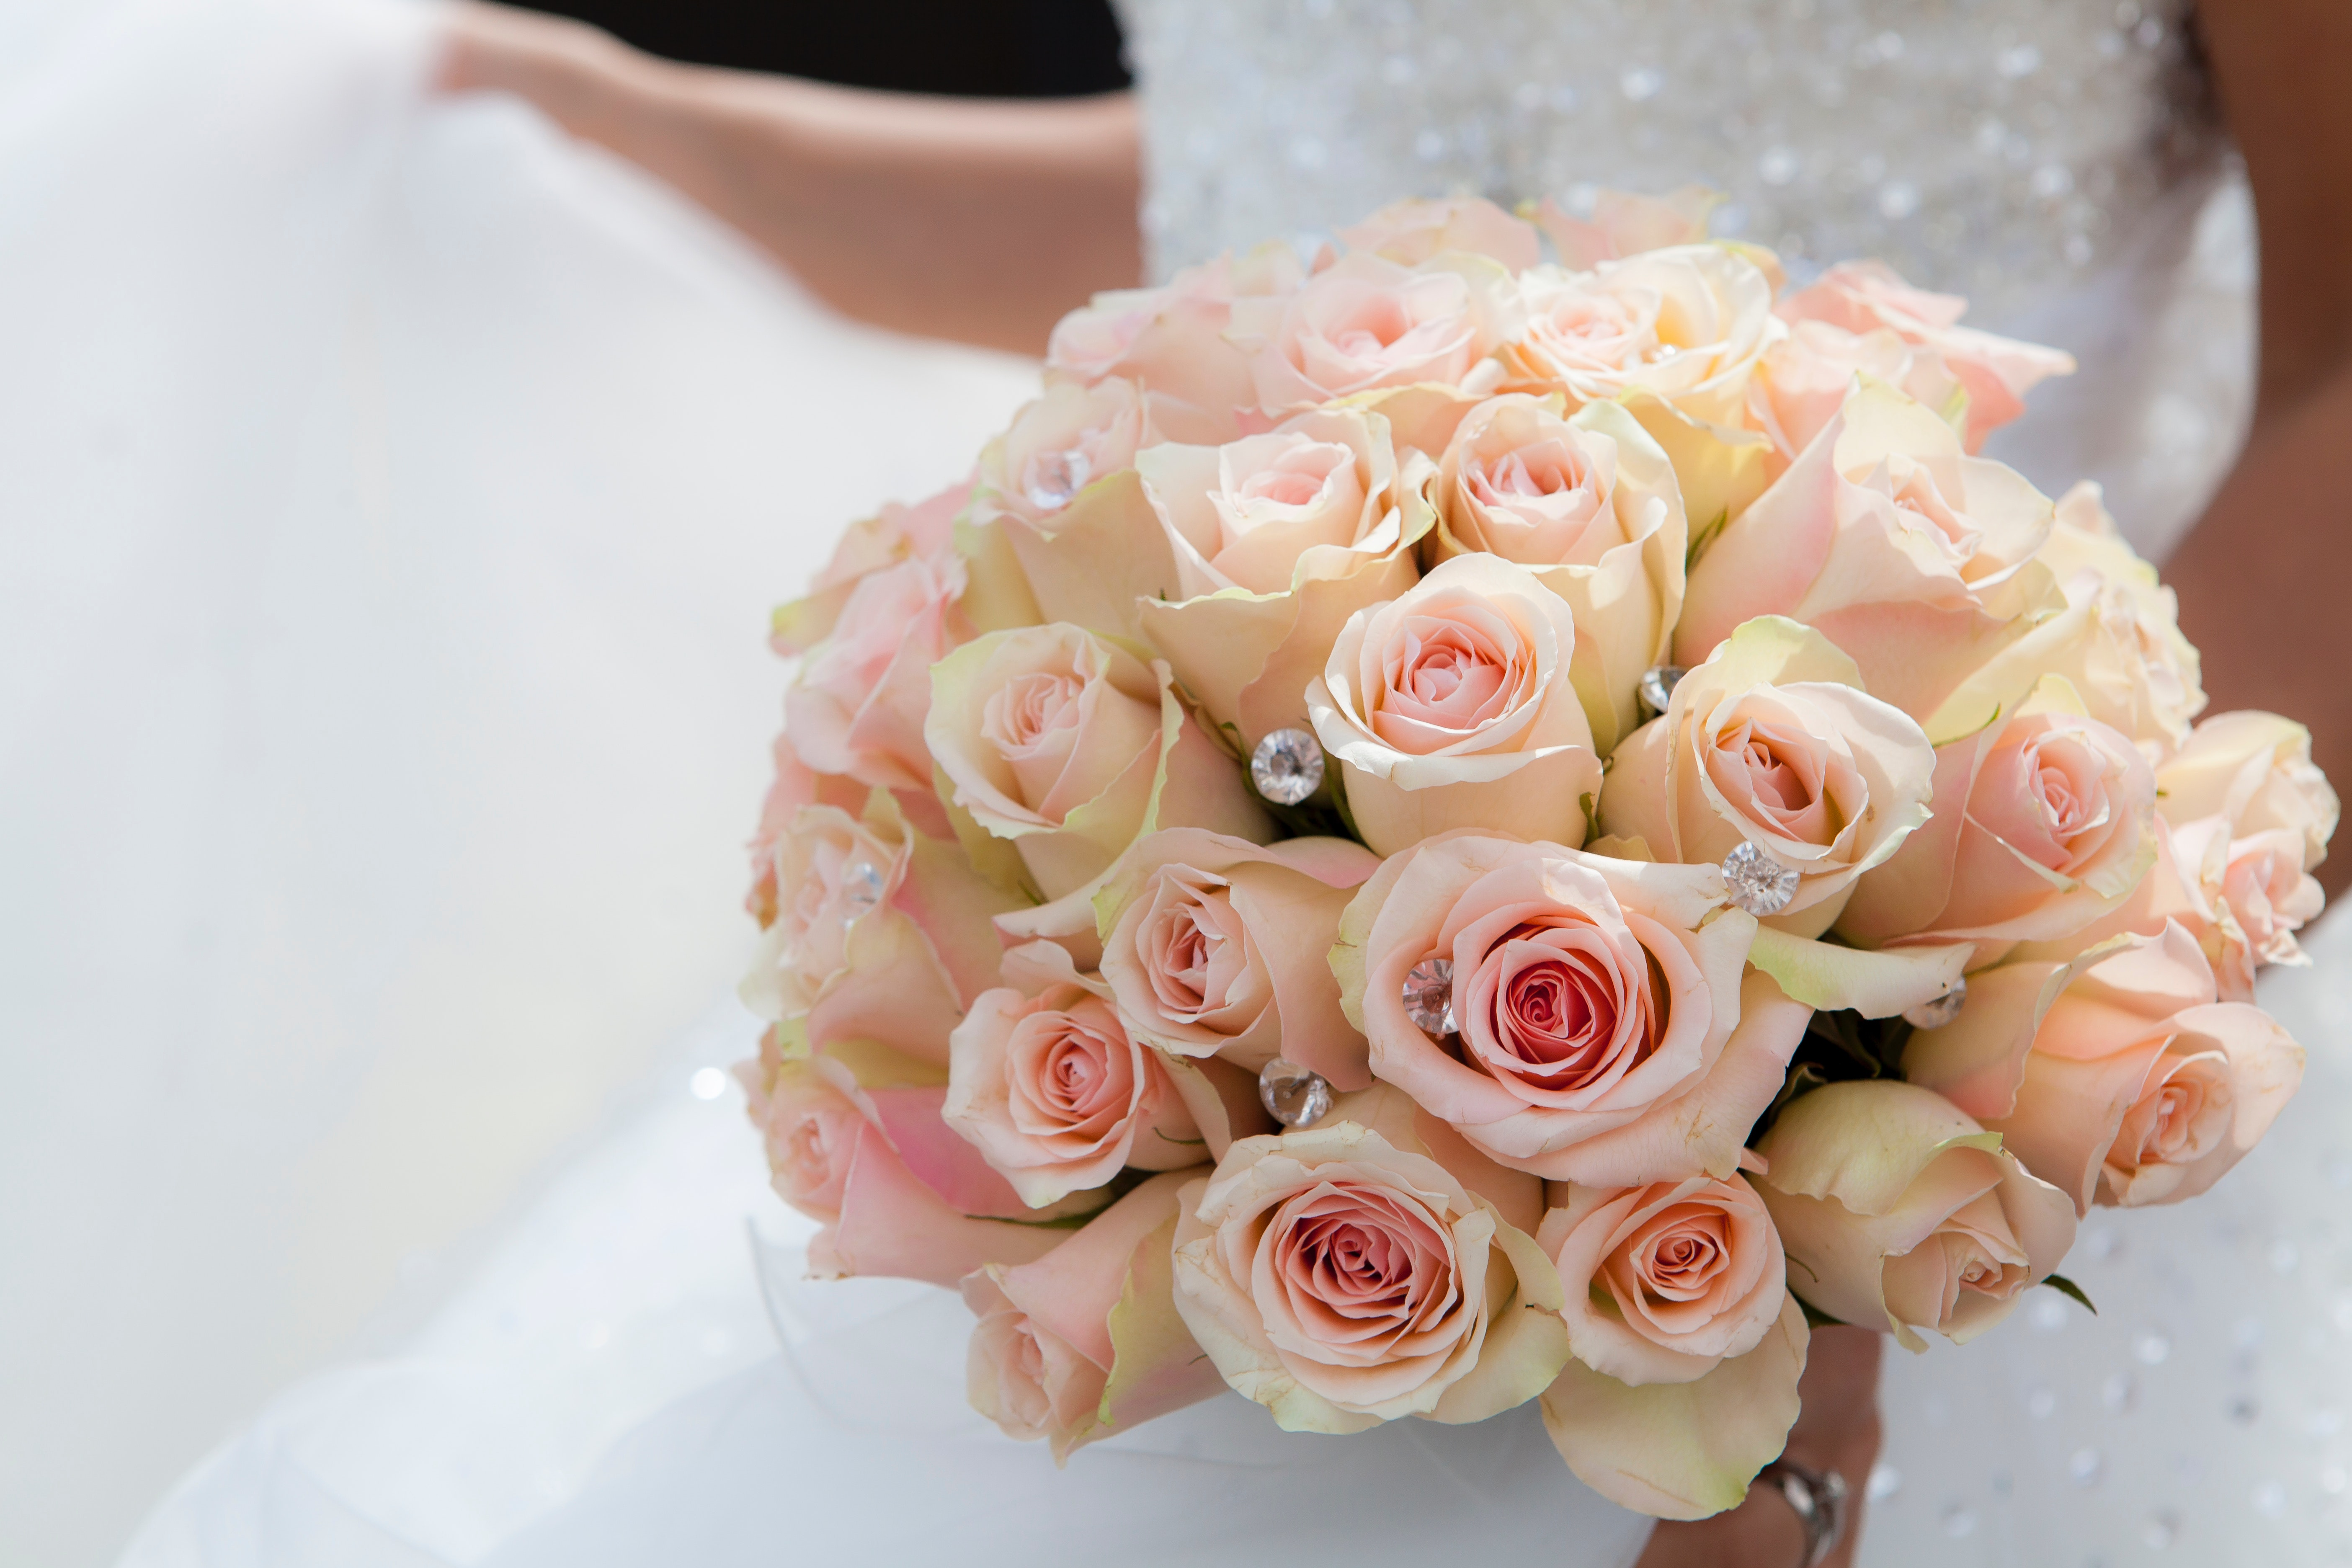 Close-up of Pink Rose Bouquet, Beautiful, Flowers, Wedding, Romantic, HQ Photo